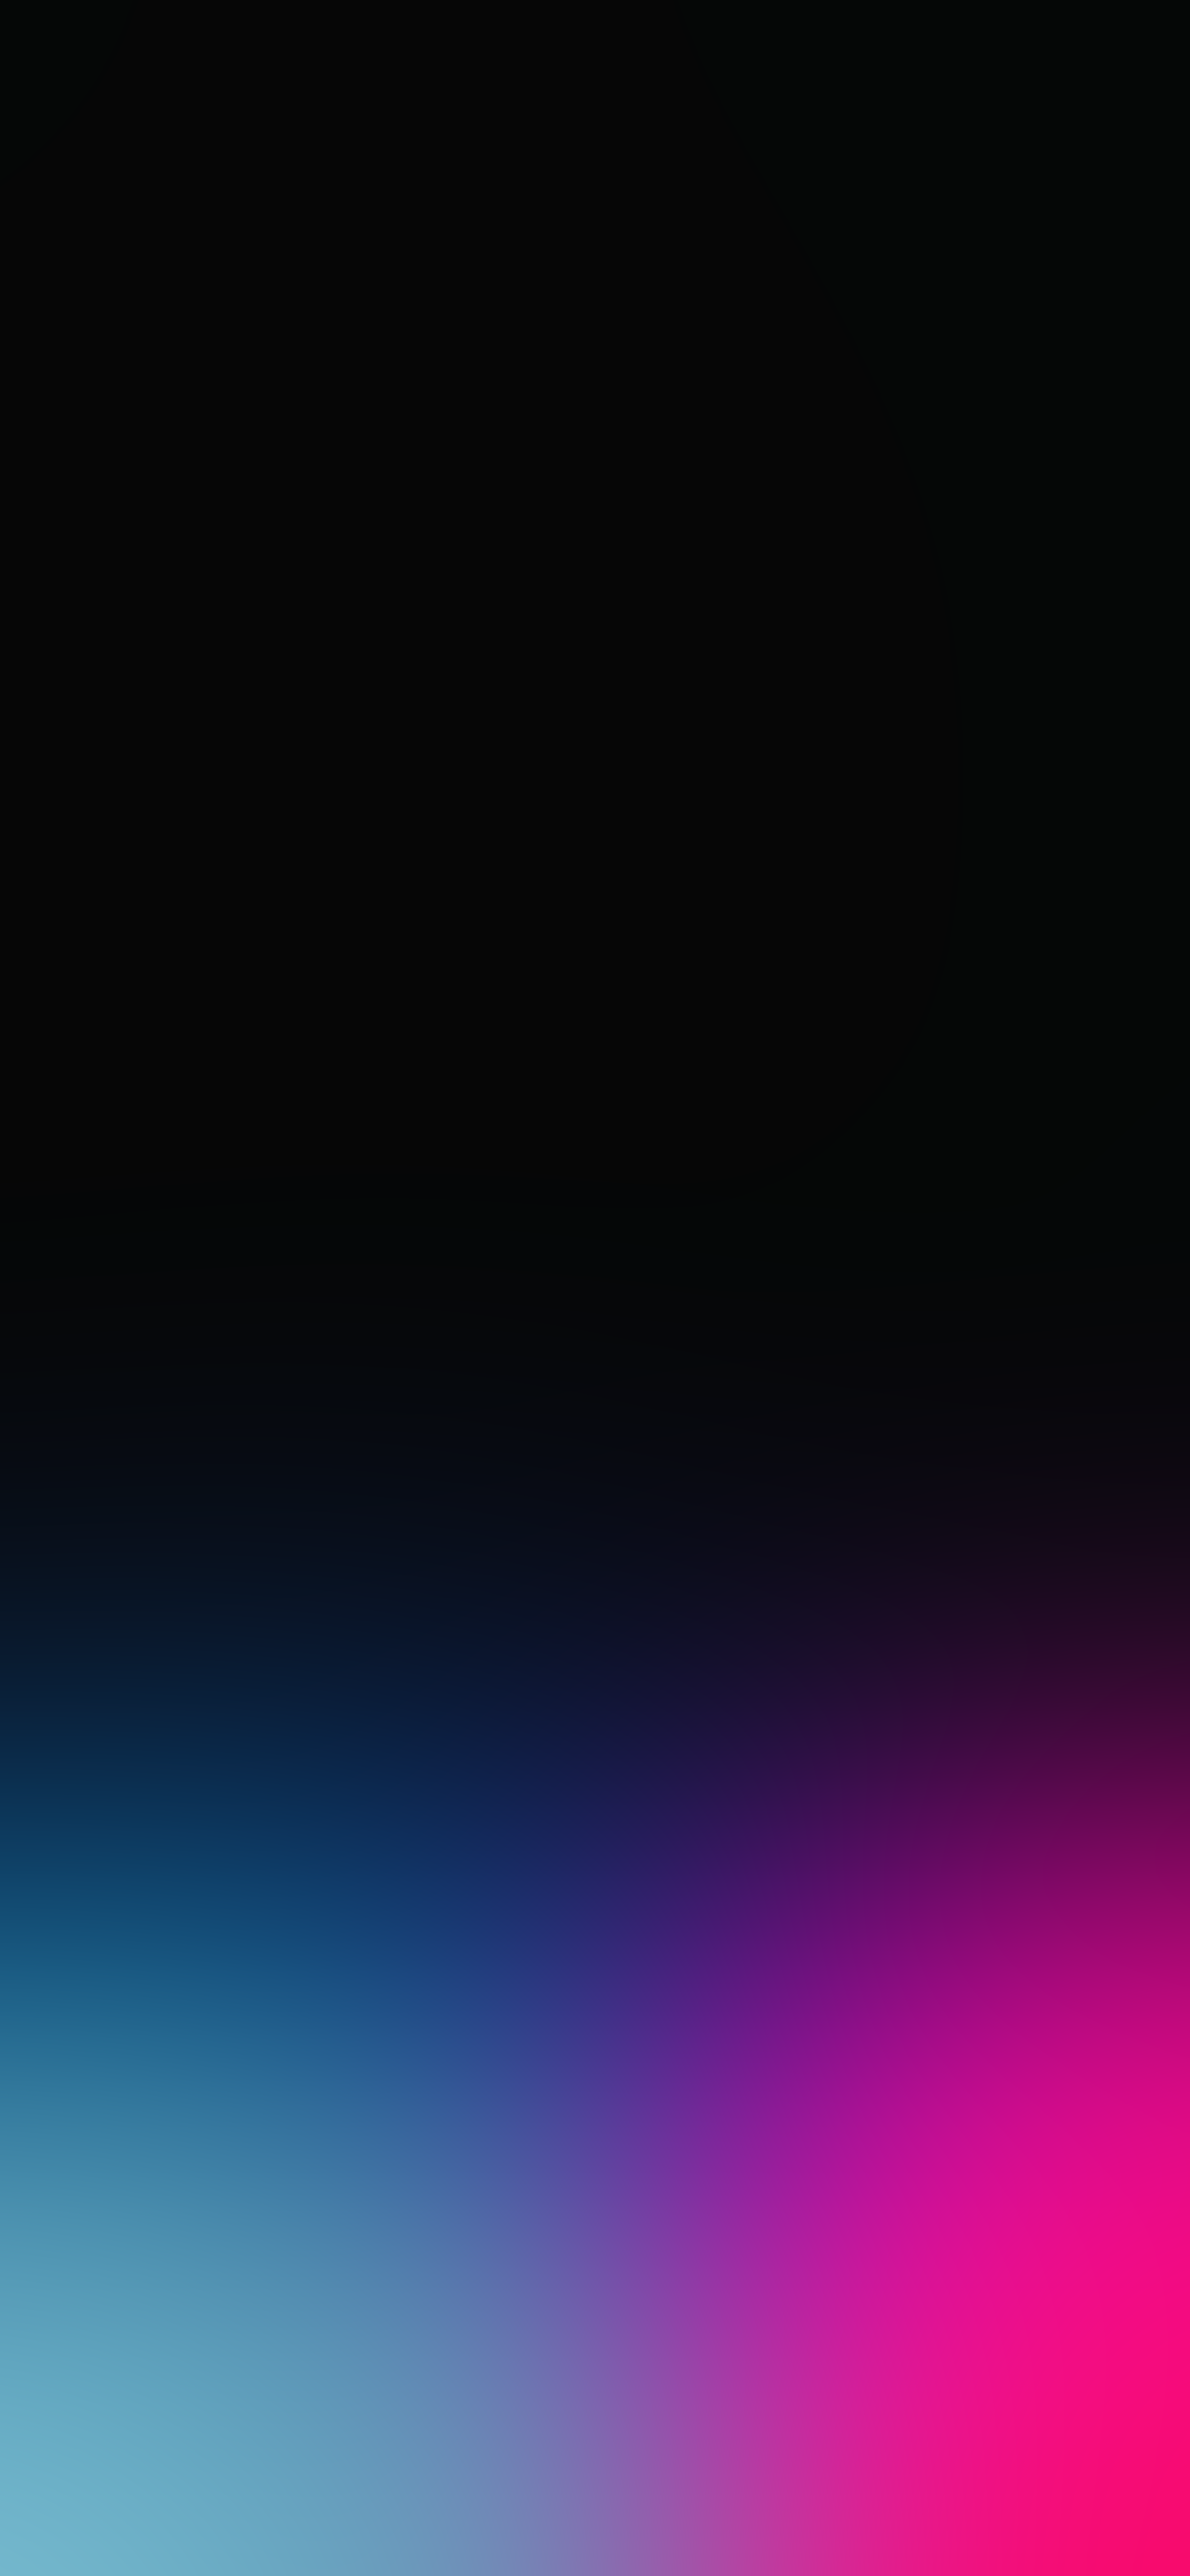 True Black With Colorful Gradients Wallpapers